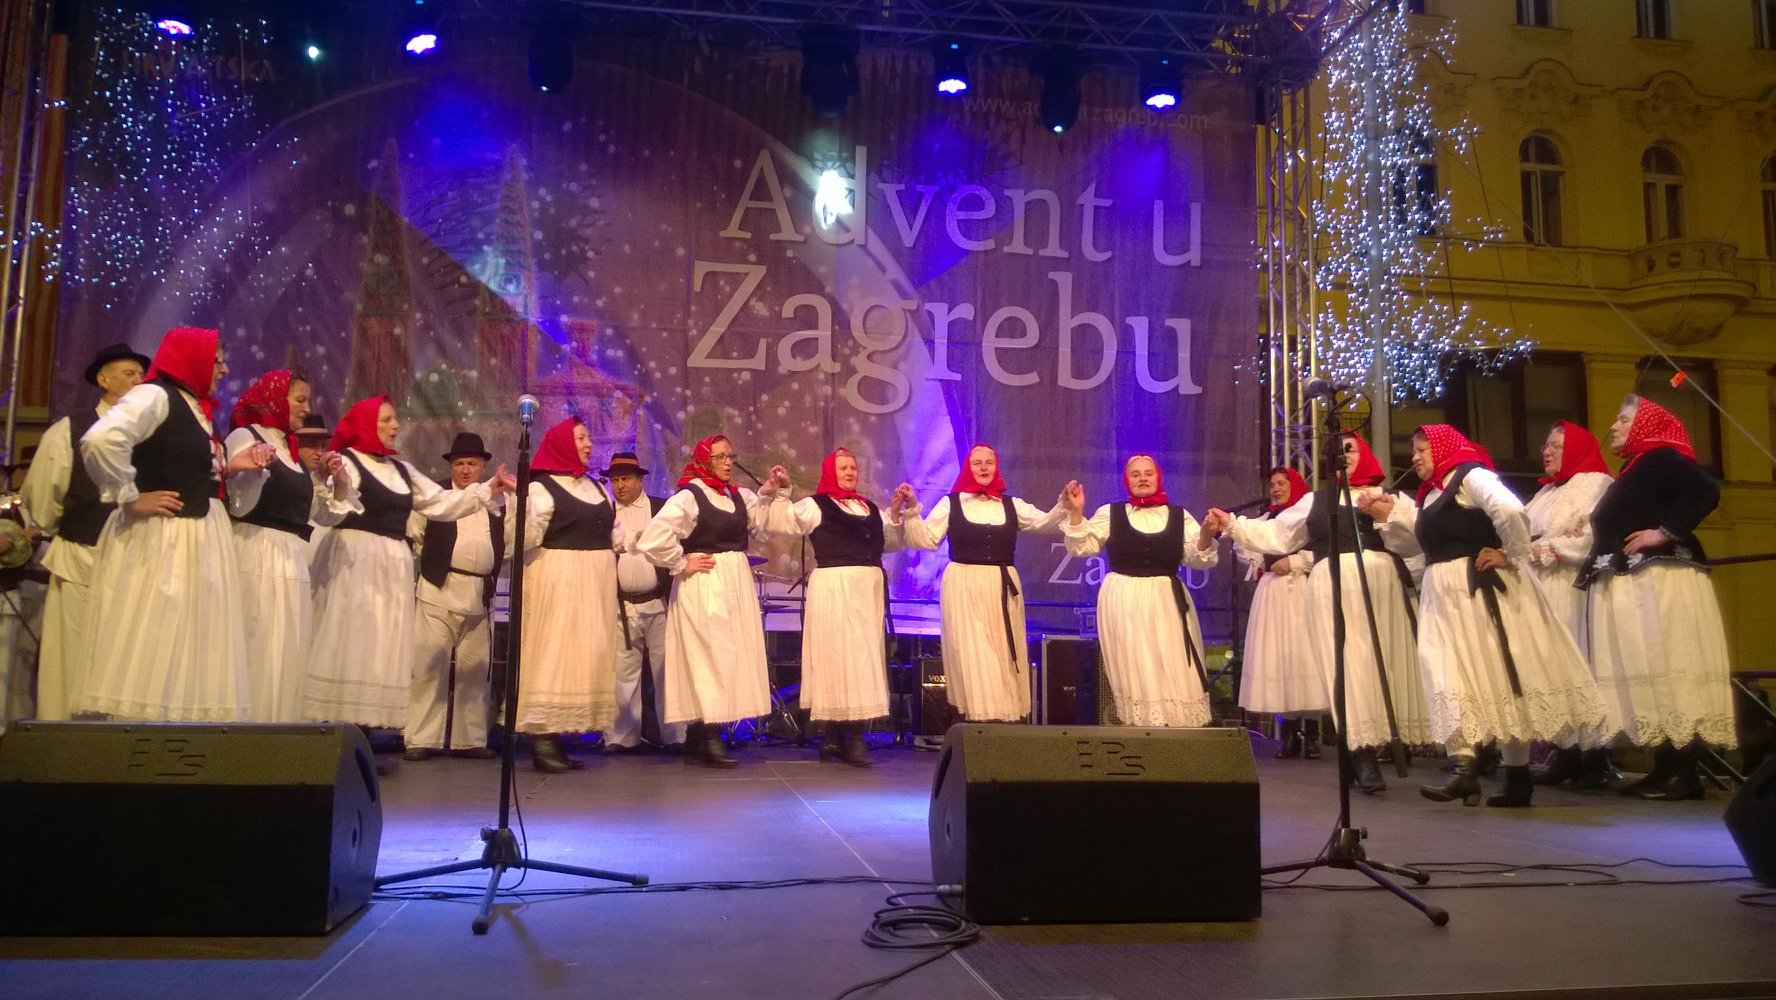 Advent u Zagrebu 8 Renato Pačelat 2018